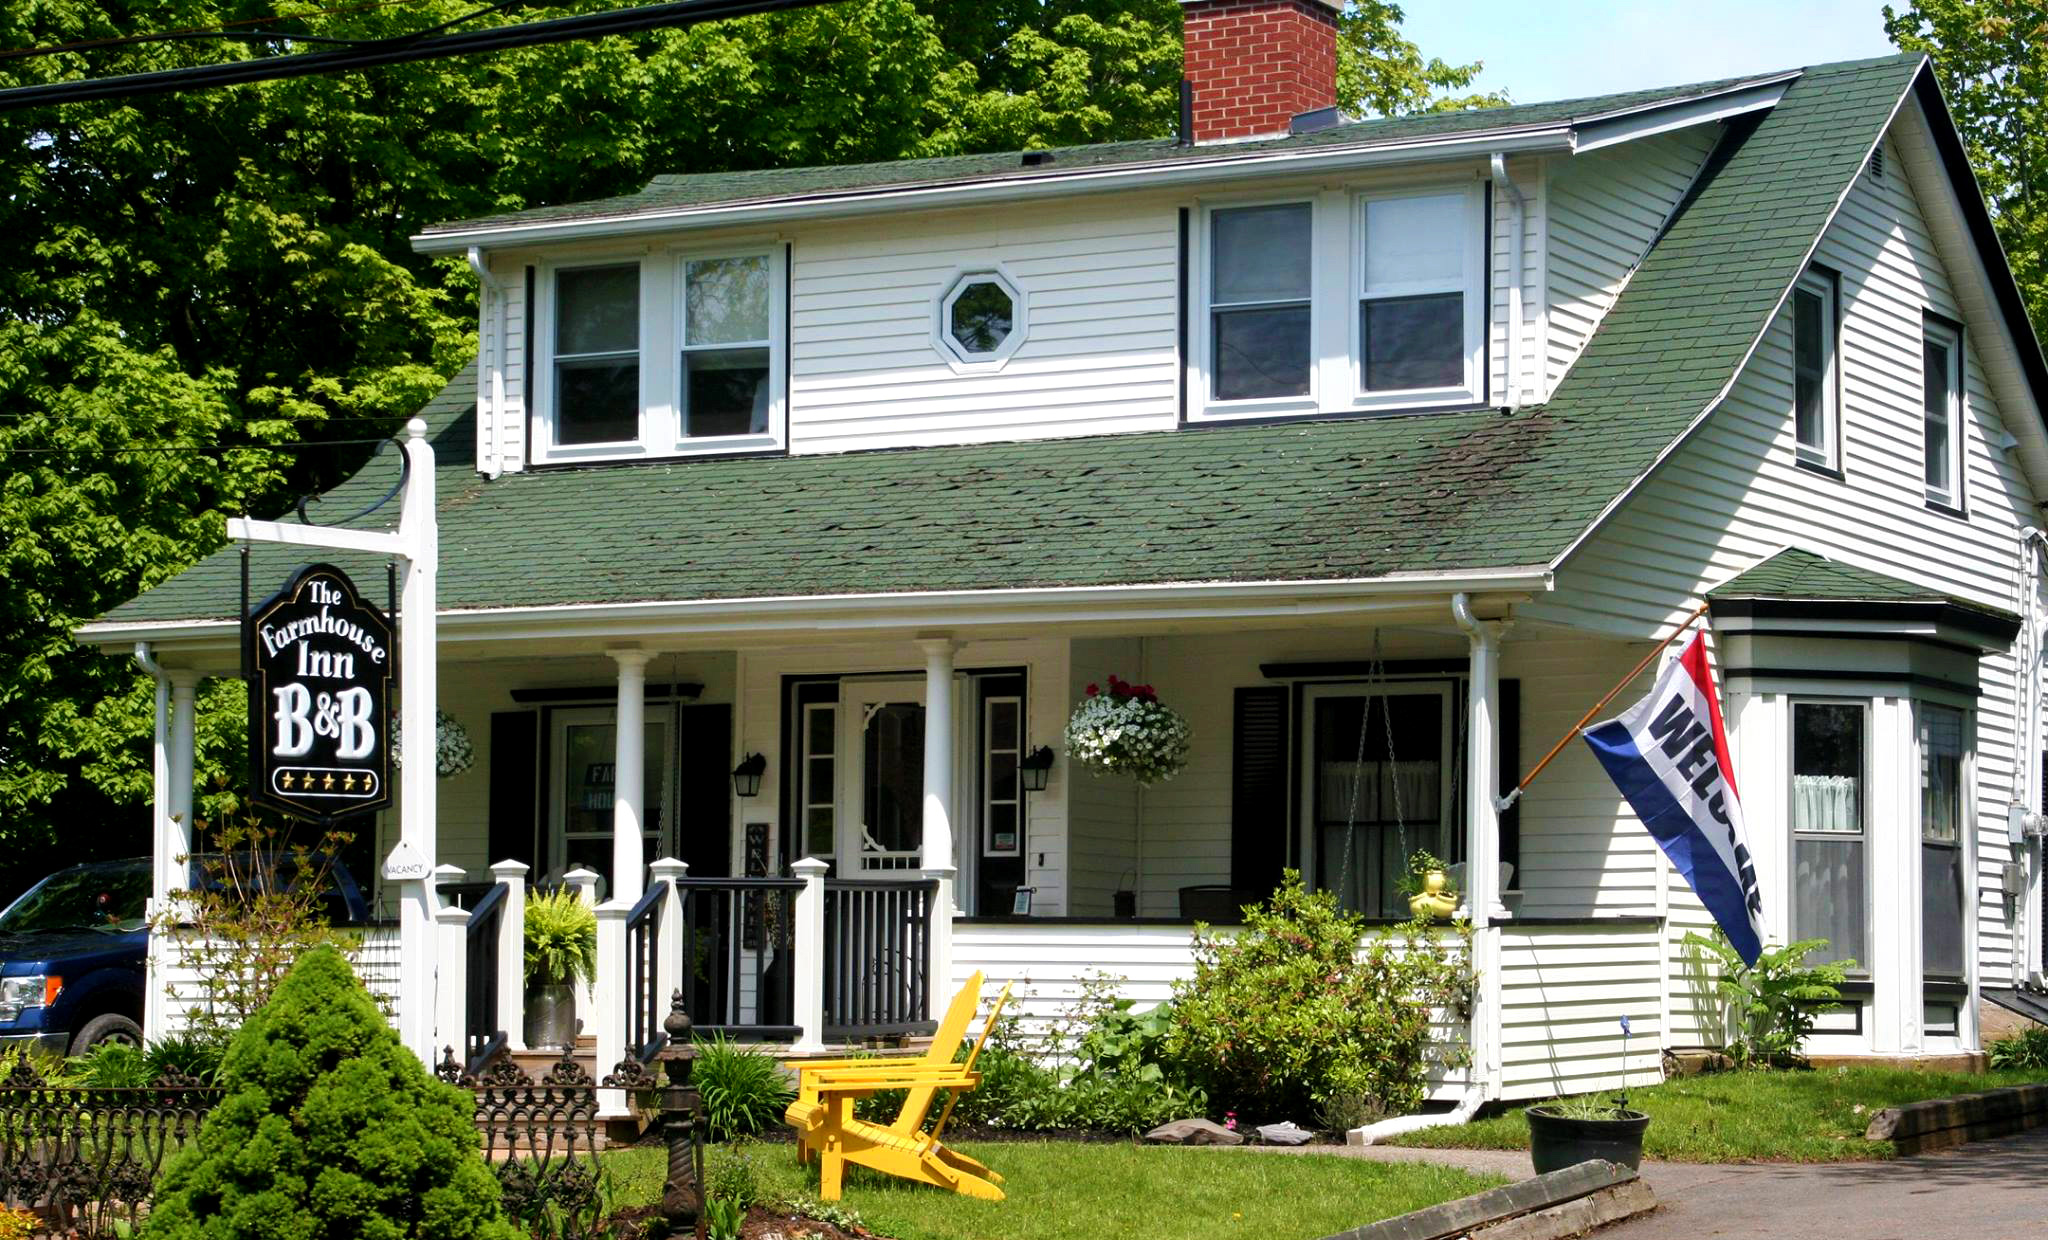 The Farmhouse Inn B&B, Canning, Nova Scotia